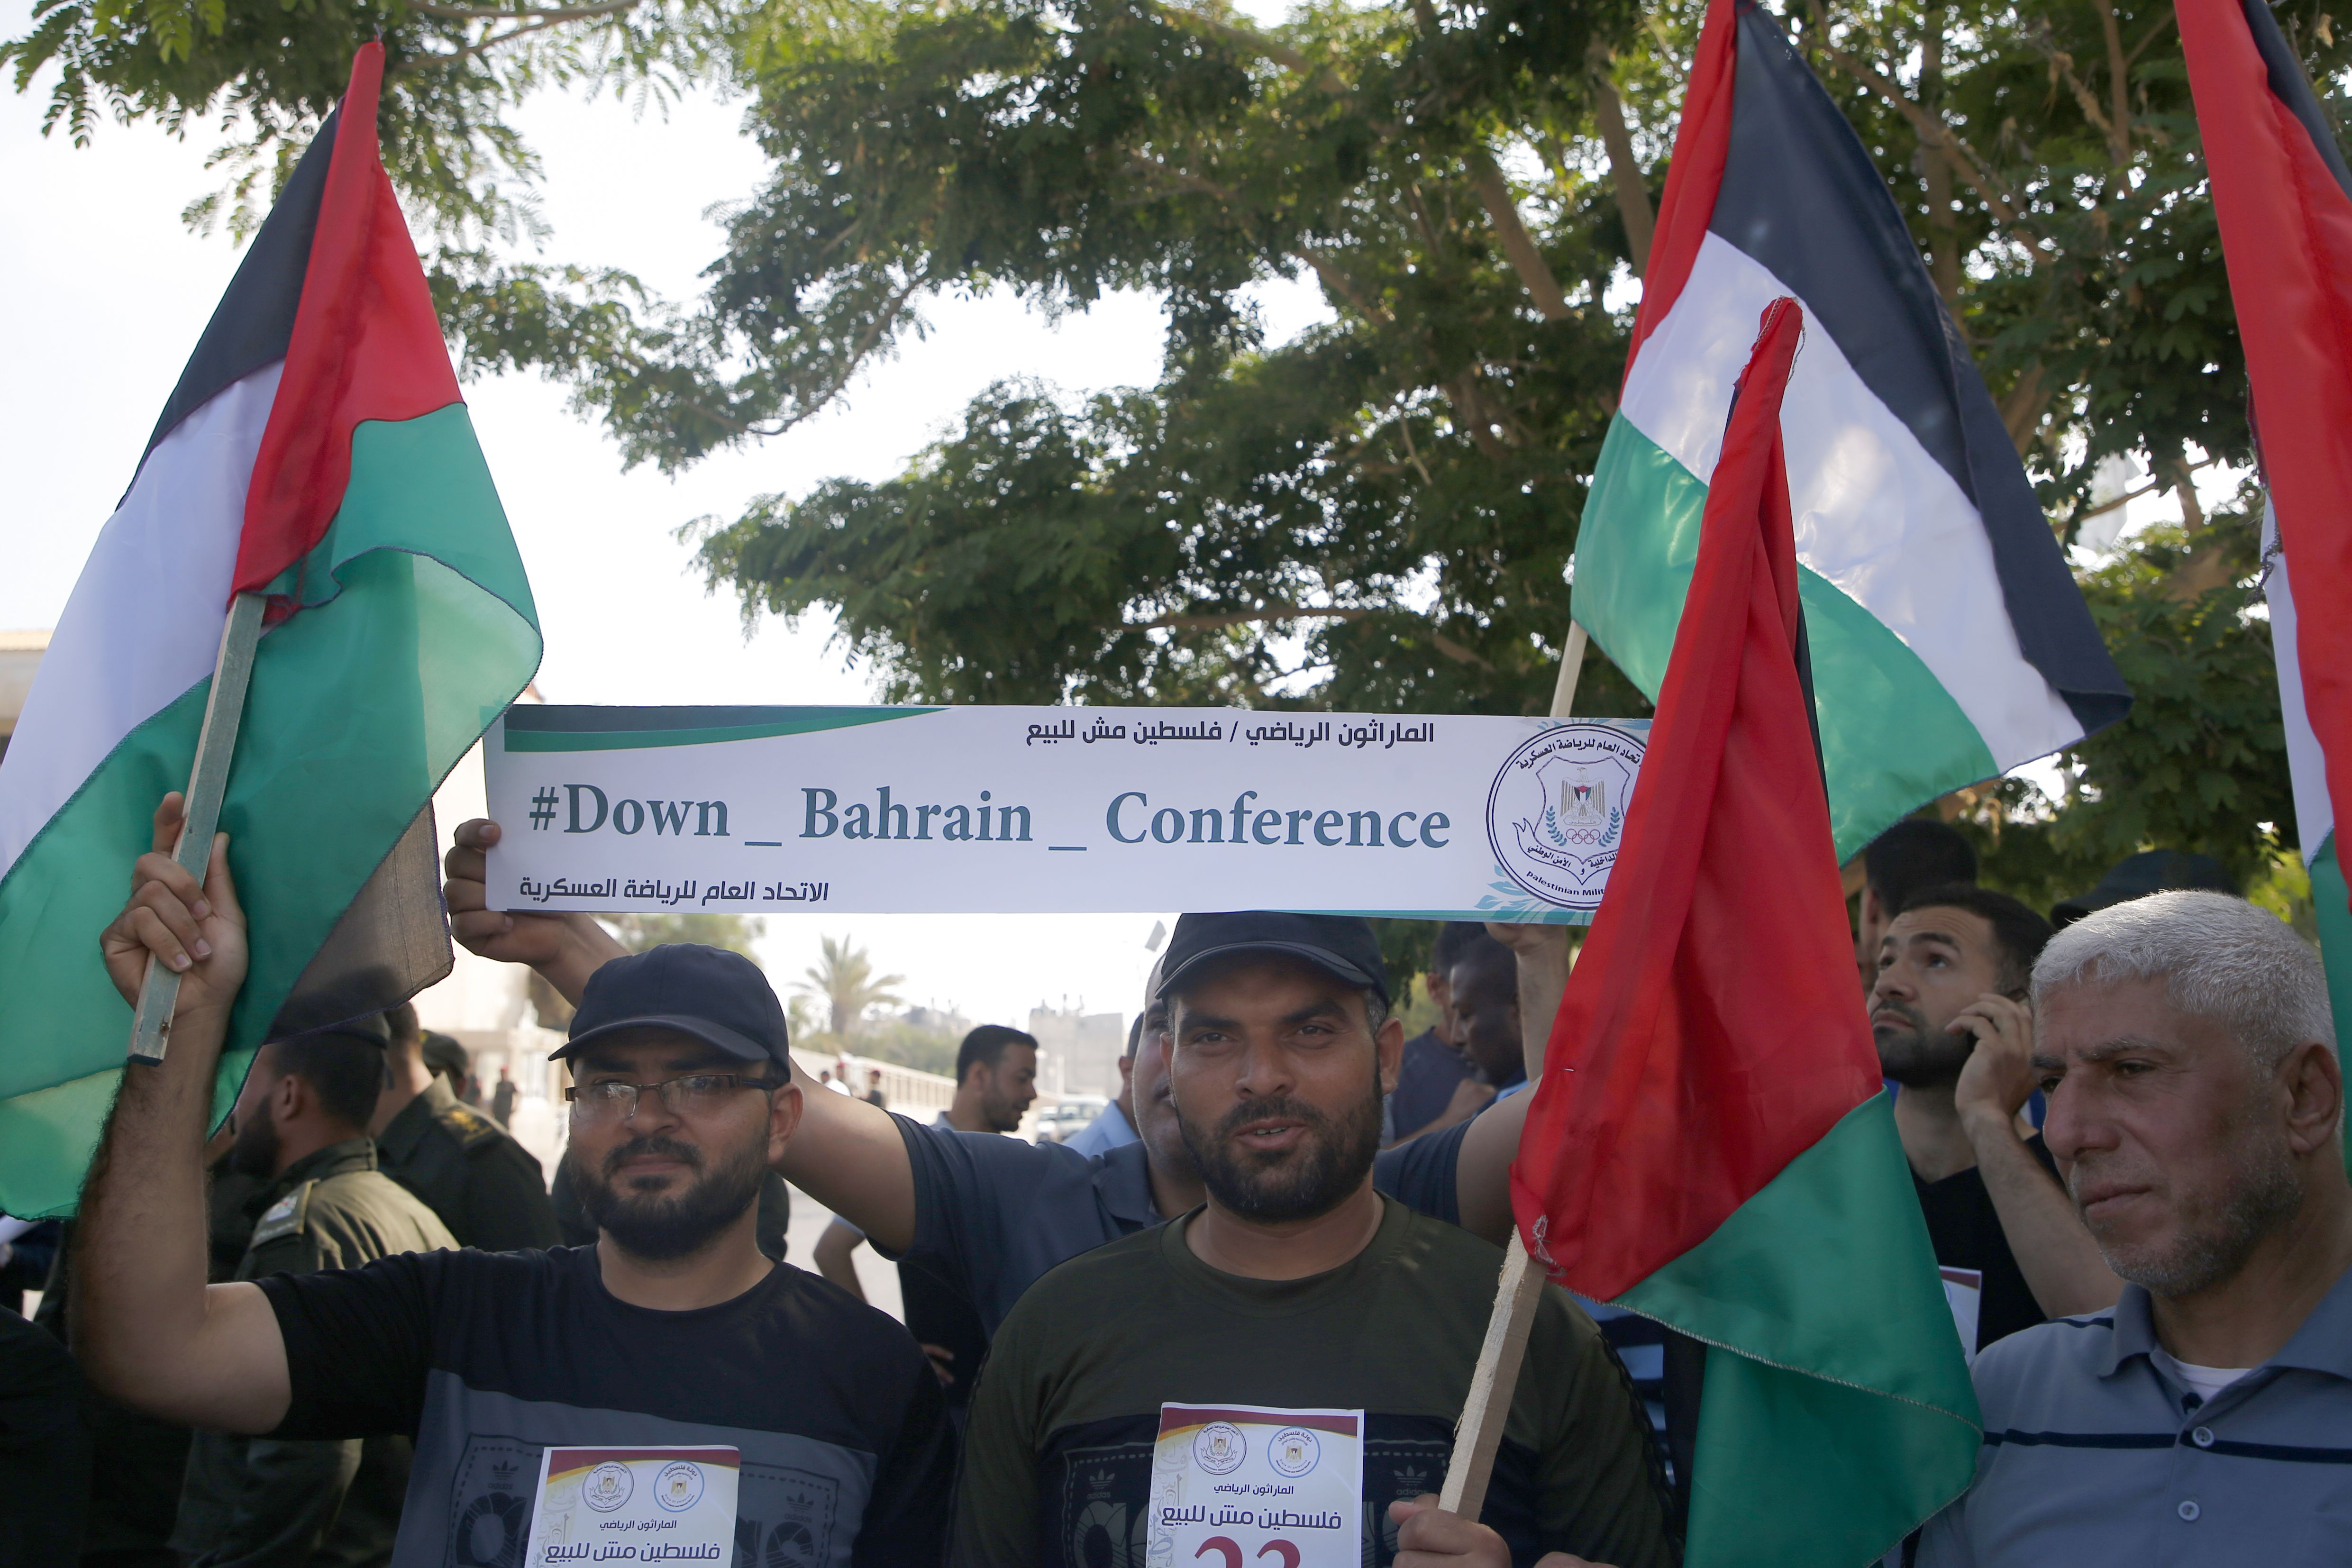 Paletinians wave national flags and hold a banner denouncing the US-led Peace to Prosperity conference that opens tomorrow in Bahrain, in Gaza City on June 24, 2019. - The peace conference on the Palestinian economy could present Washington with a new opportunity to push Gulf allies and Israel closer together as tensions with common foe Iran rise. (MOHAMMED ABED/AFP/Getty Images)